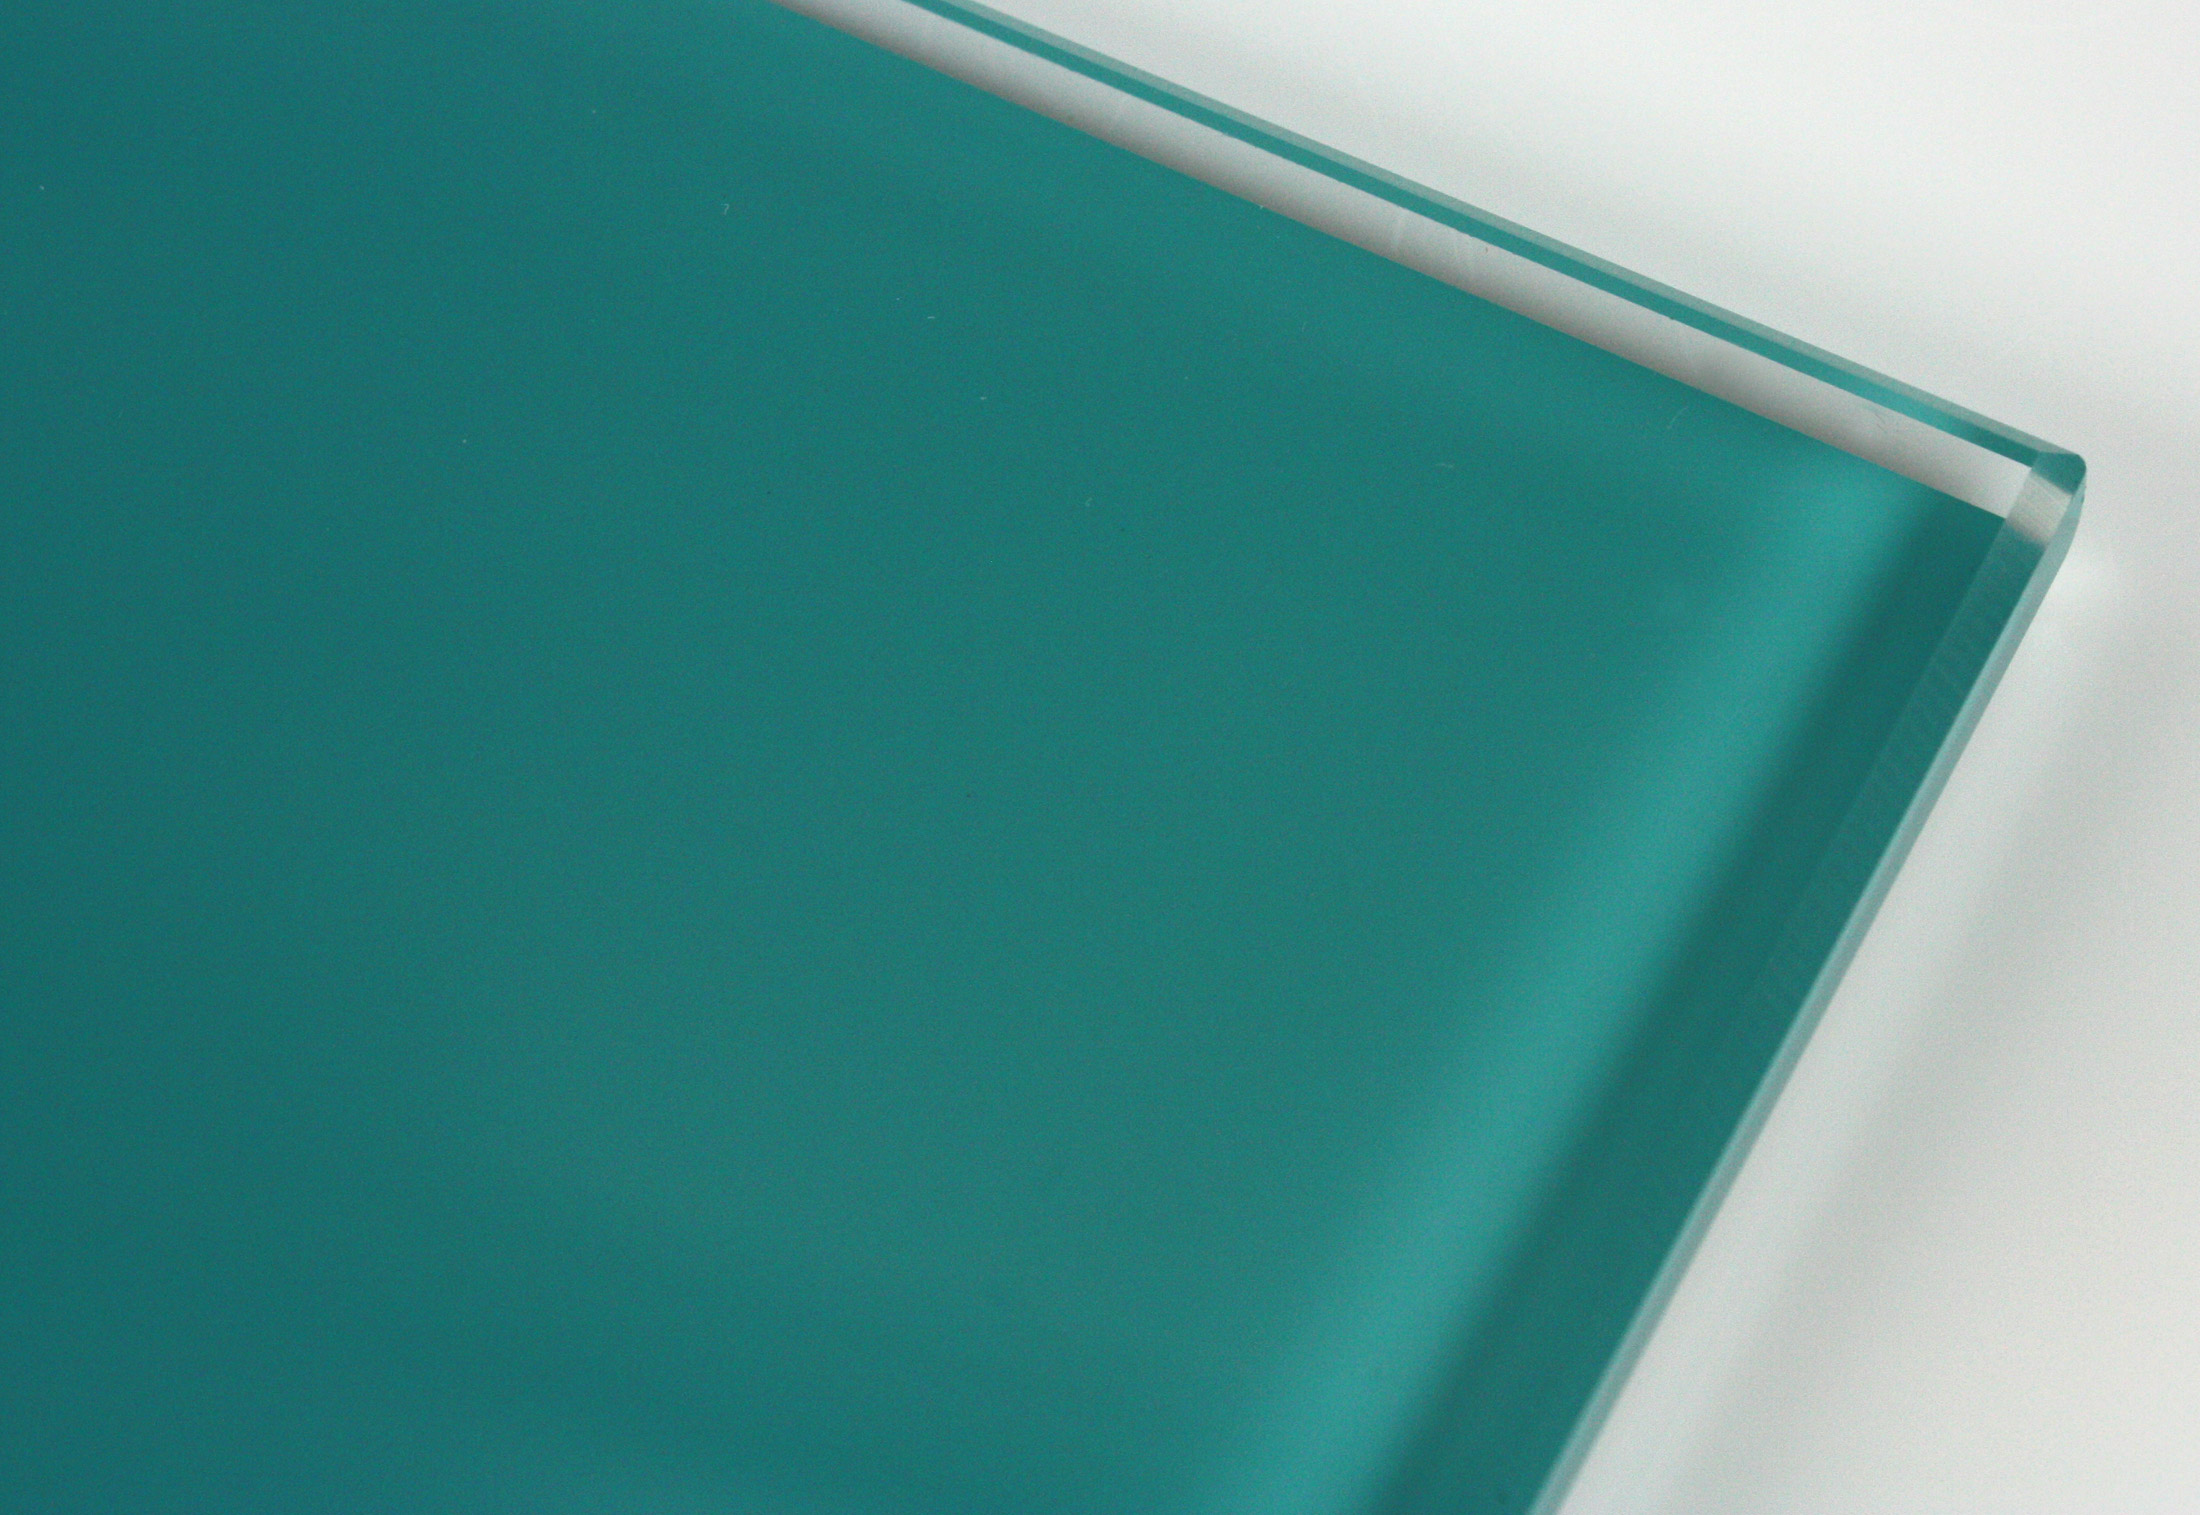 eurofloat deco brush turquoise by glas tr sch stylepark. Black Bedroom Furniture Sets. Home Design Ideas